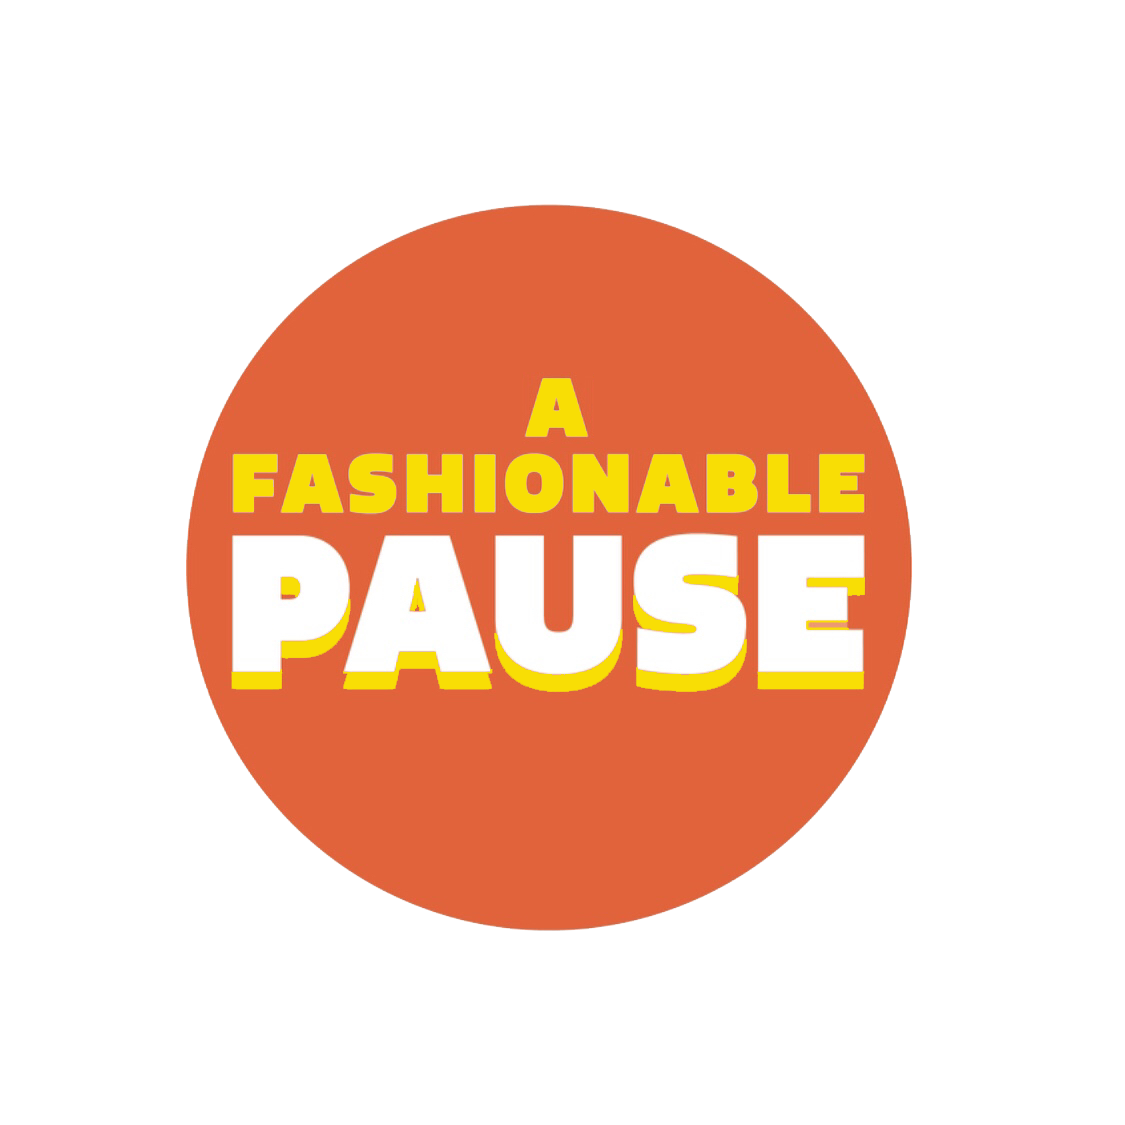 A Fashionable Pause